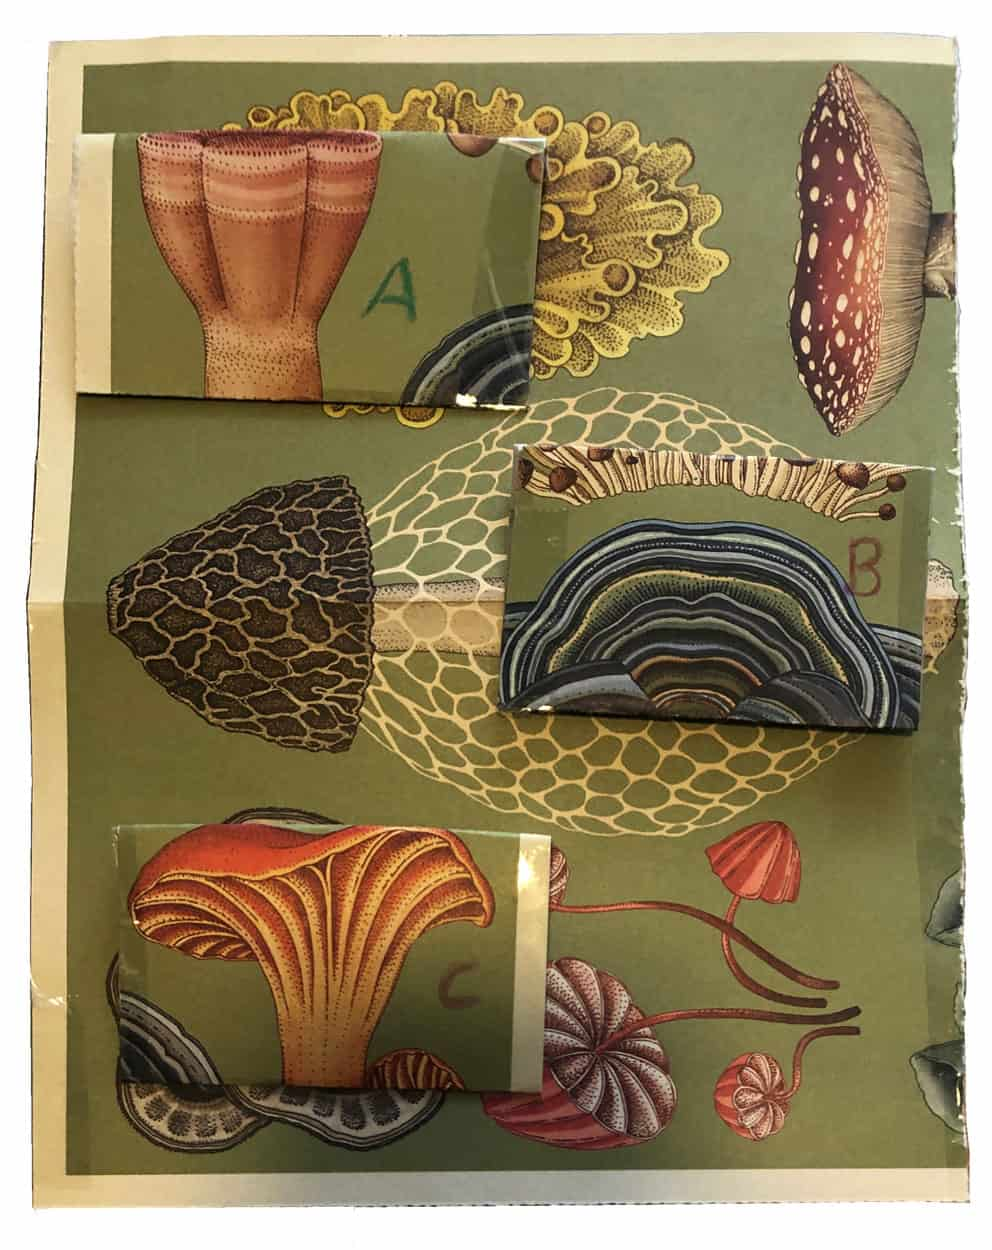 collage of botanical illustrations of mushrooms